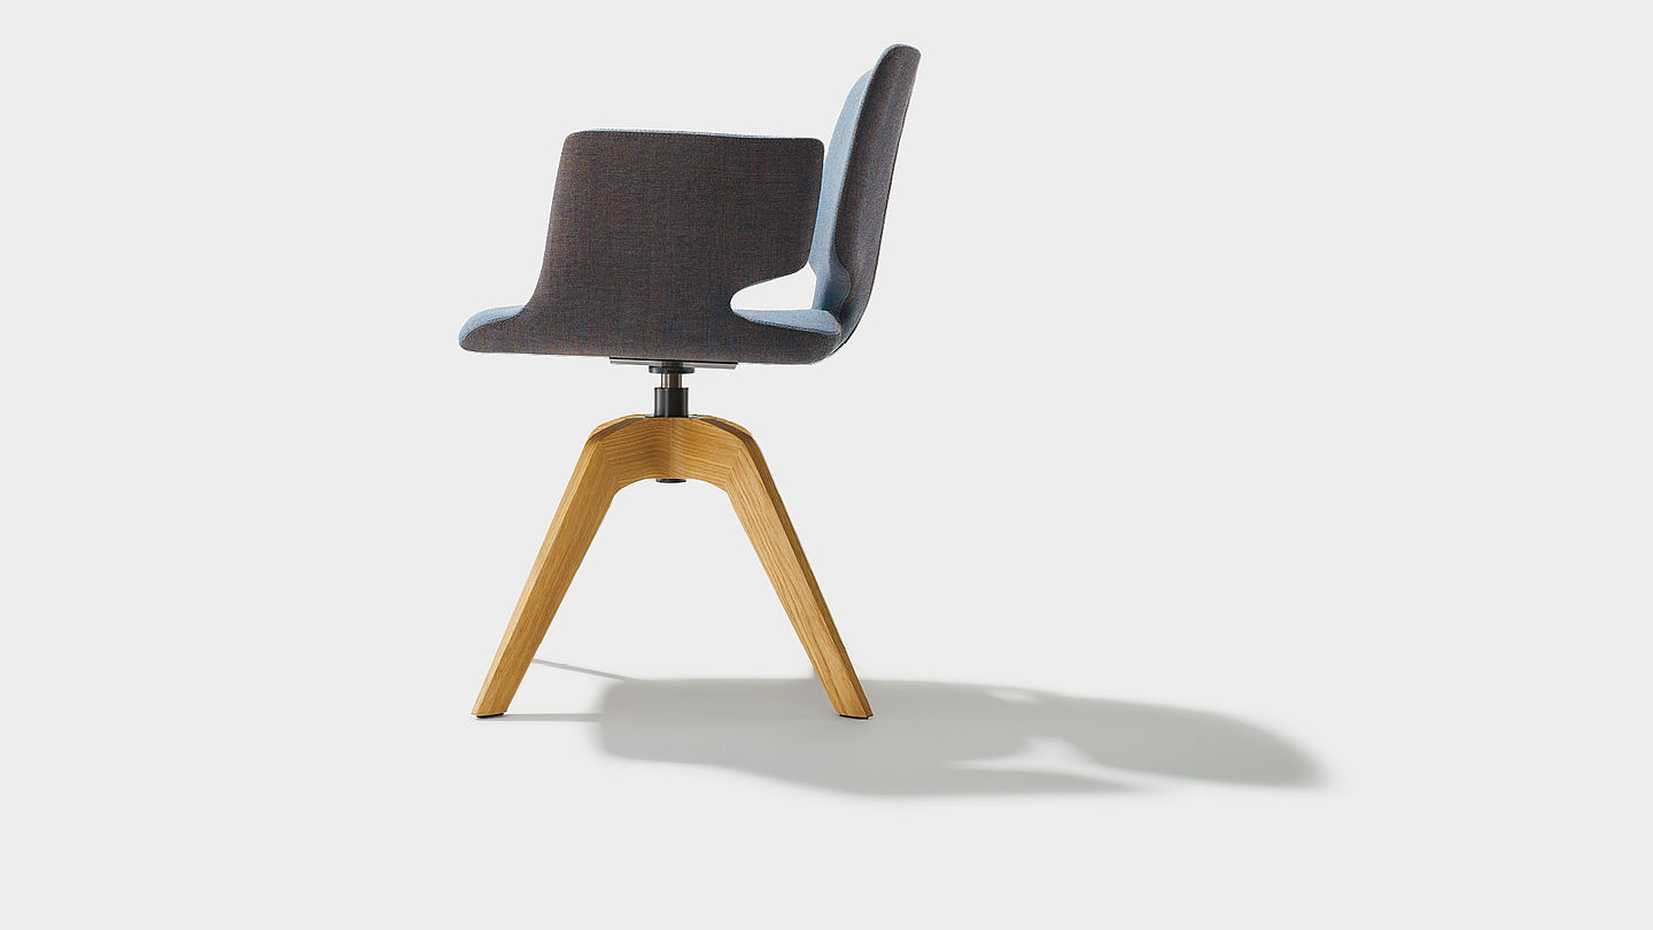 Aye Swivel Chair by Team 7 product image 2